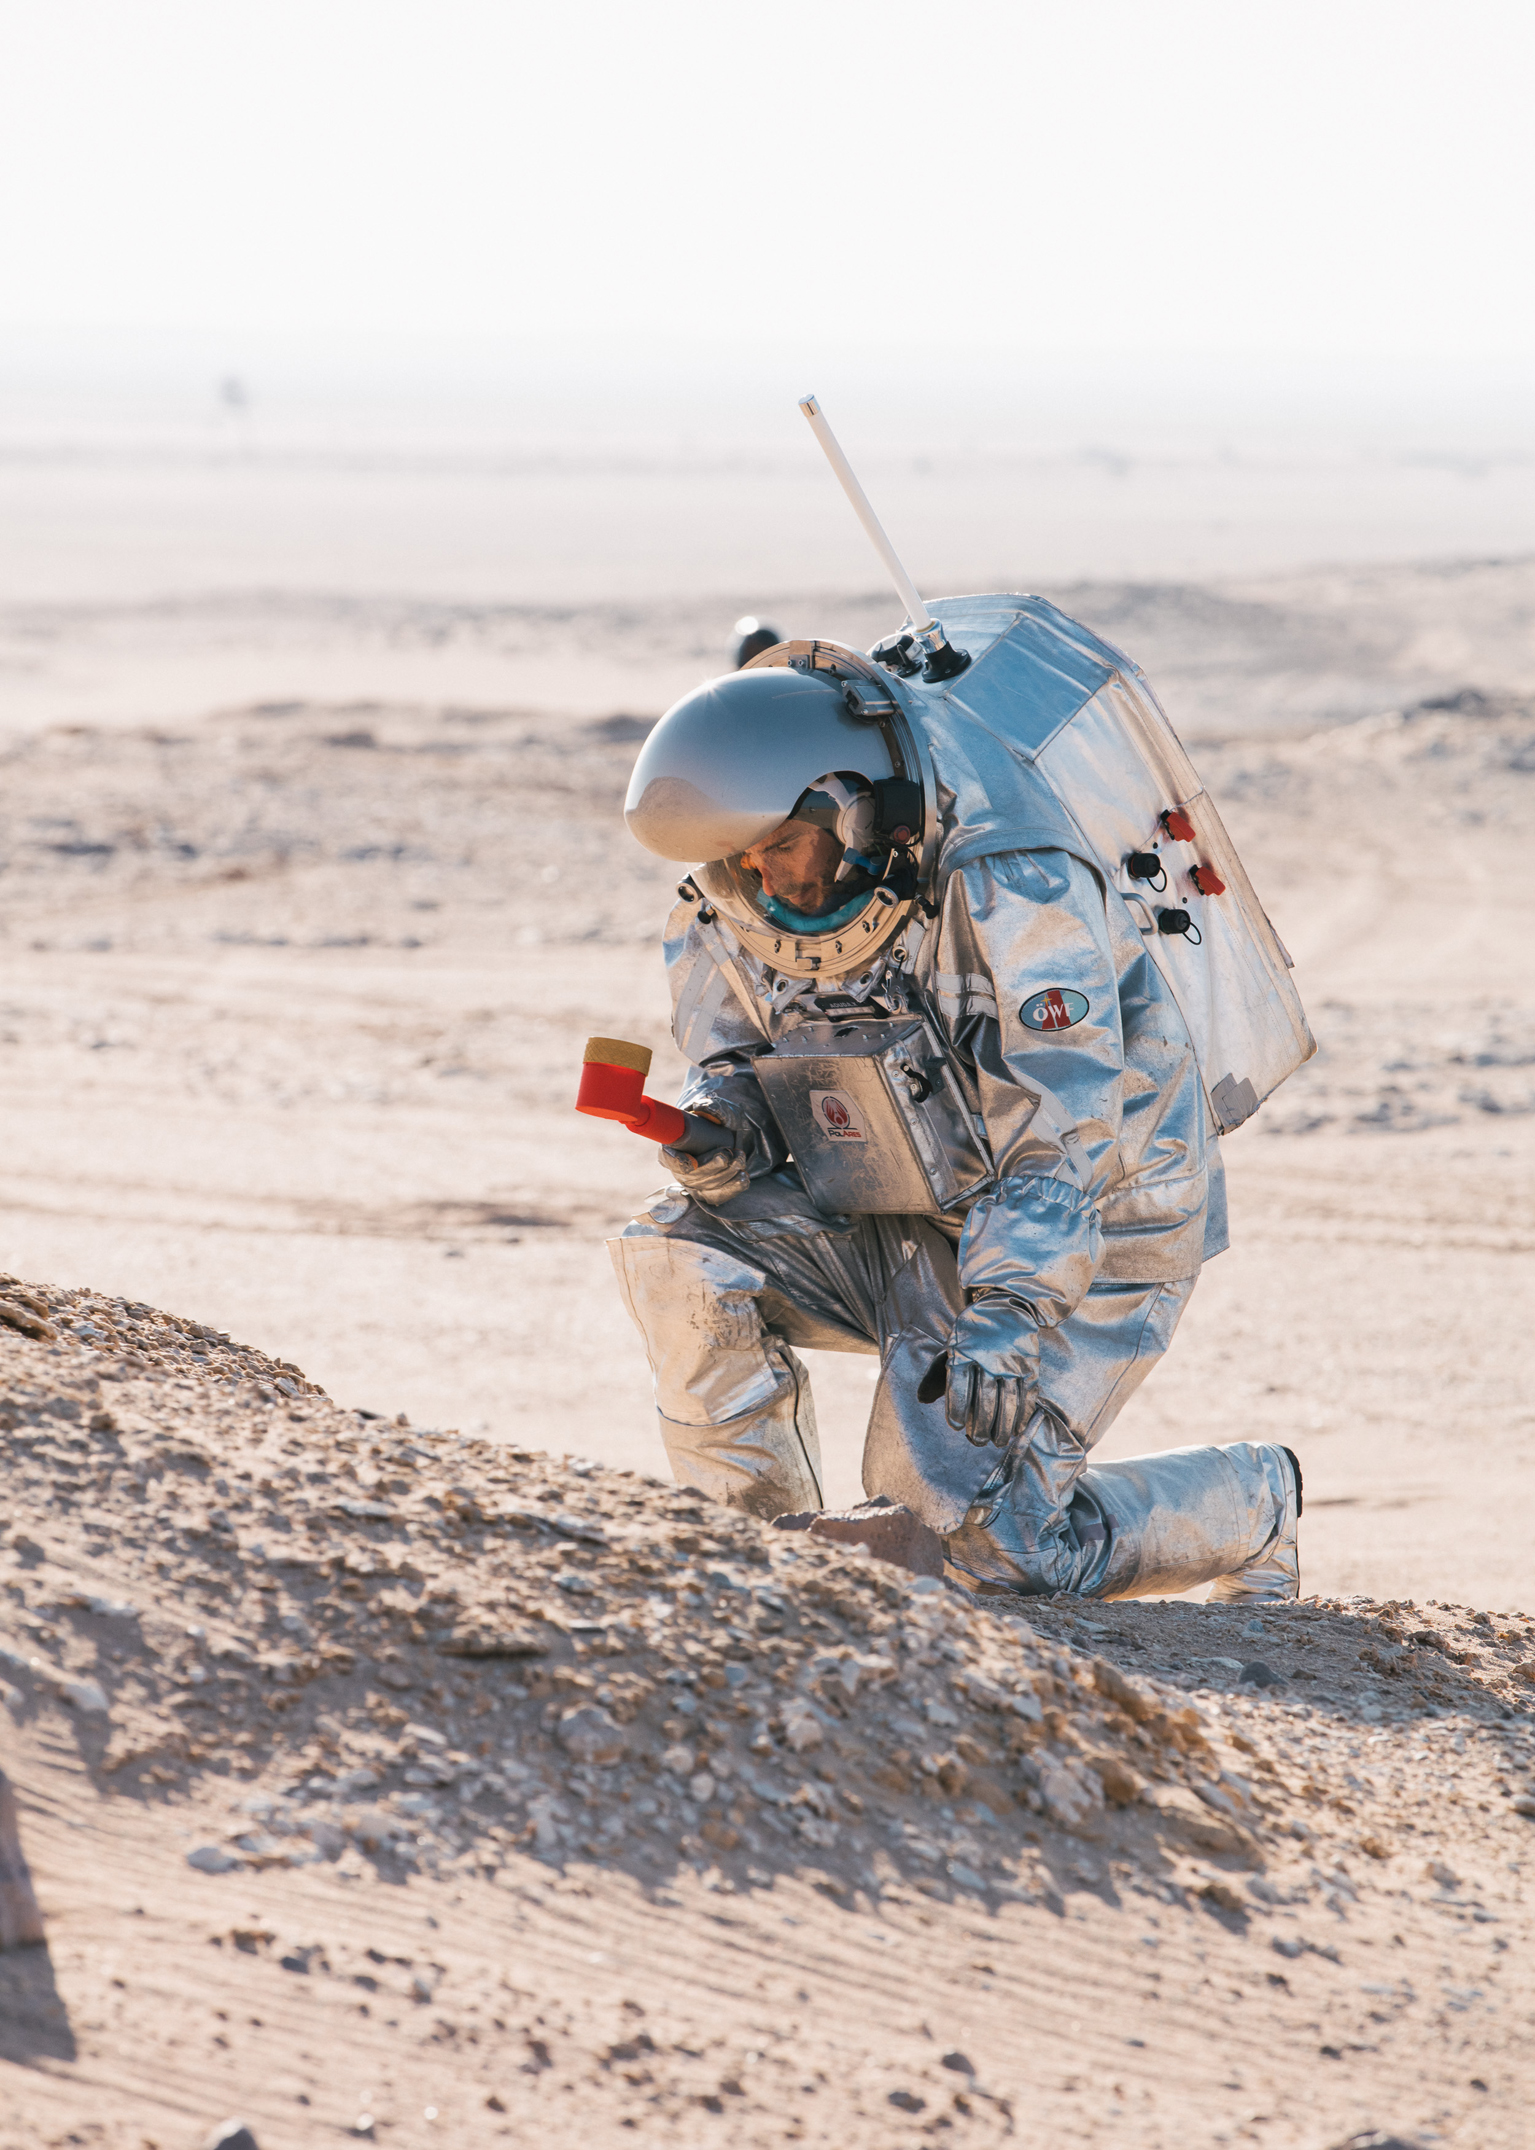 A man in a space suit kneeling takes samples in the red desert sand. He holds a tool in one hand.